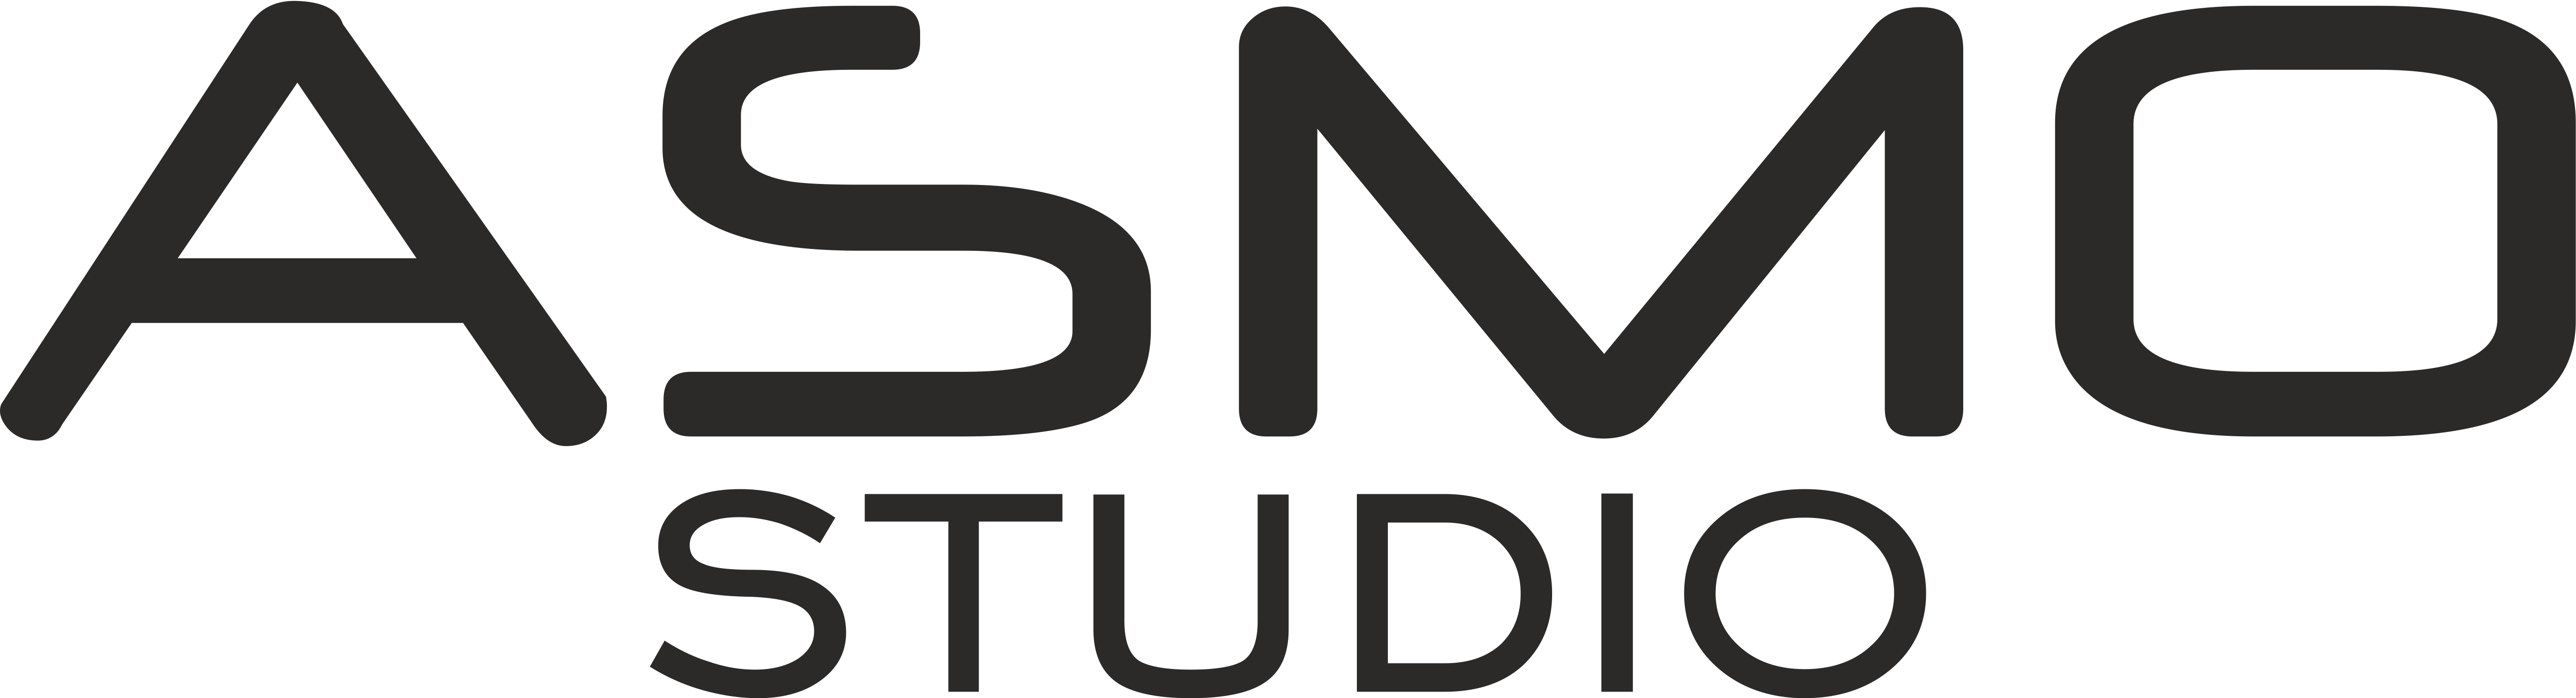 Digital agency ASMO Studio